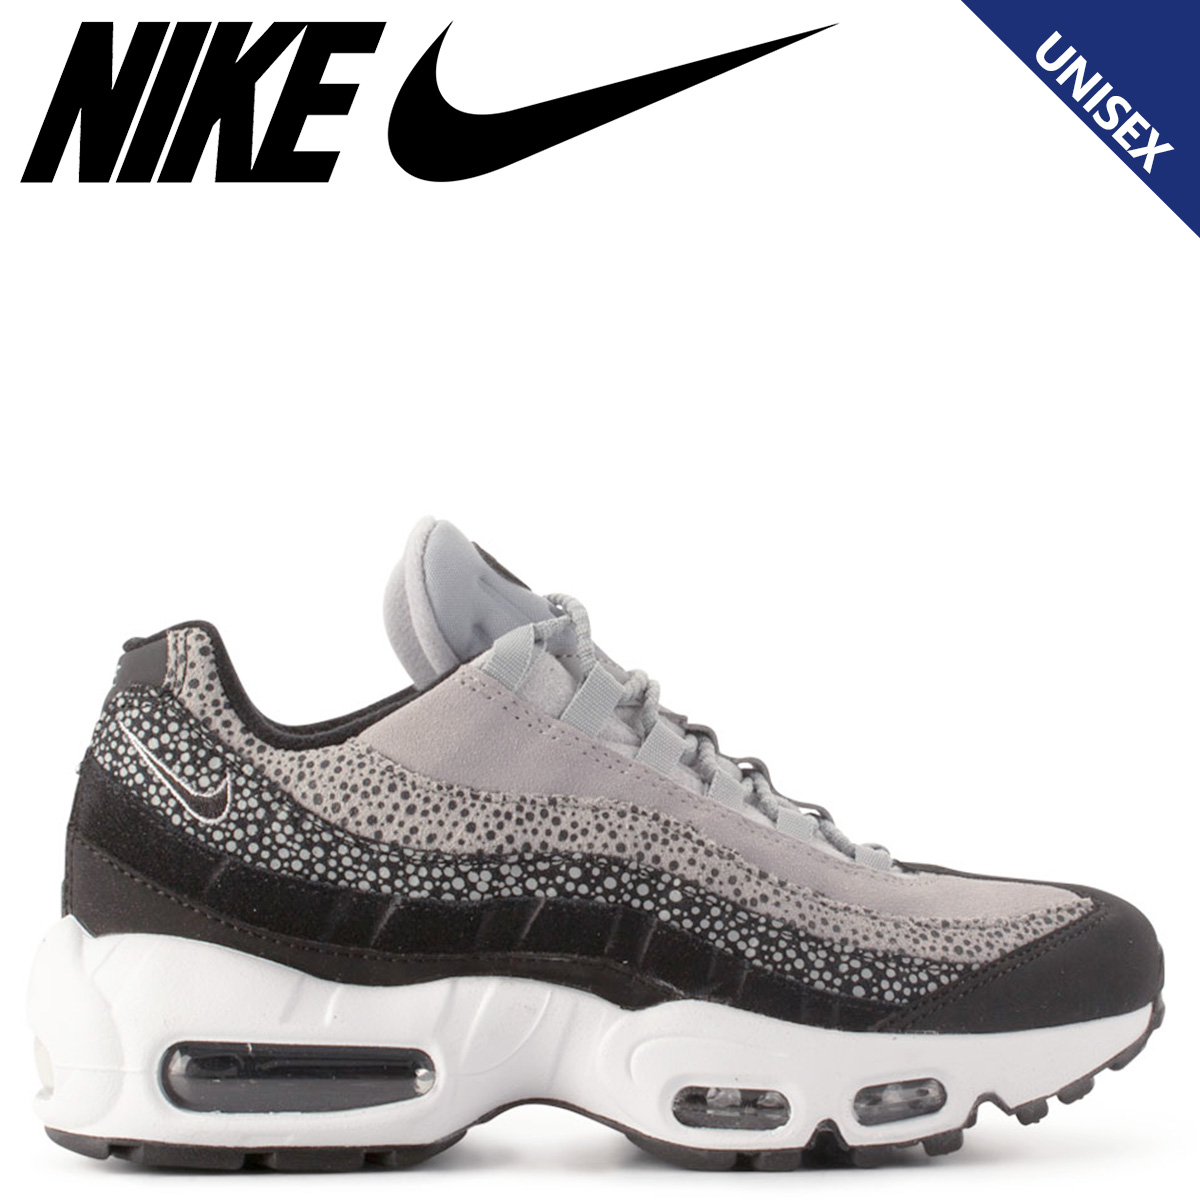 Nike NIKE Air Max 95 sneakers men gap Dis WMNS AIR MAX 95 PREMIUM black black 807,443 016